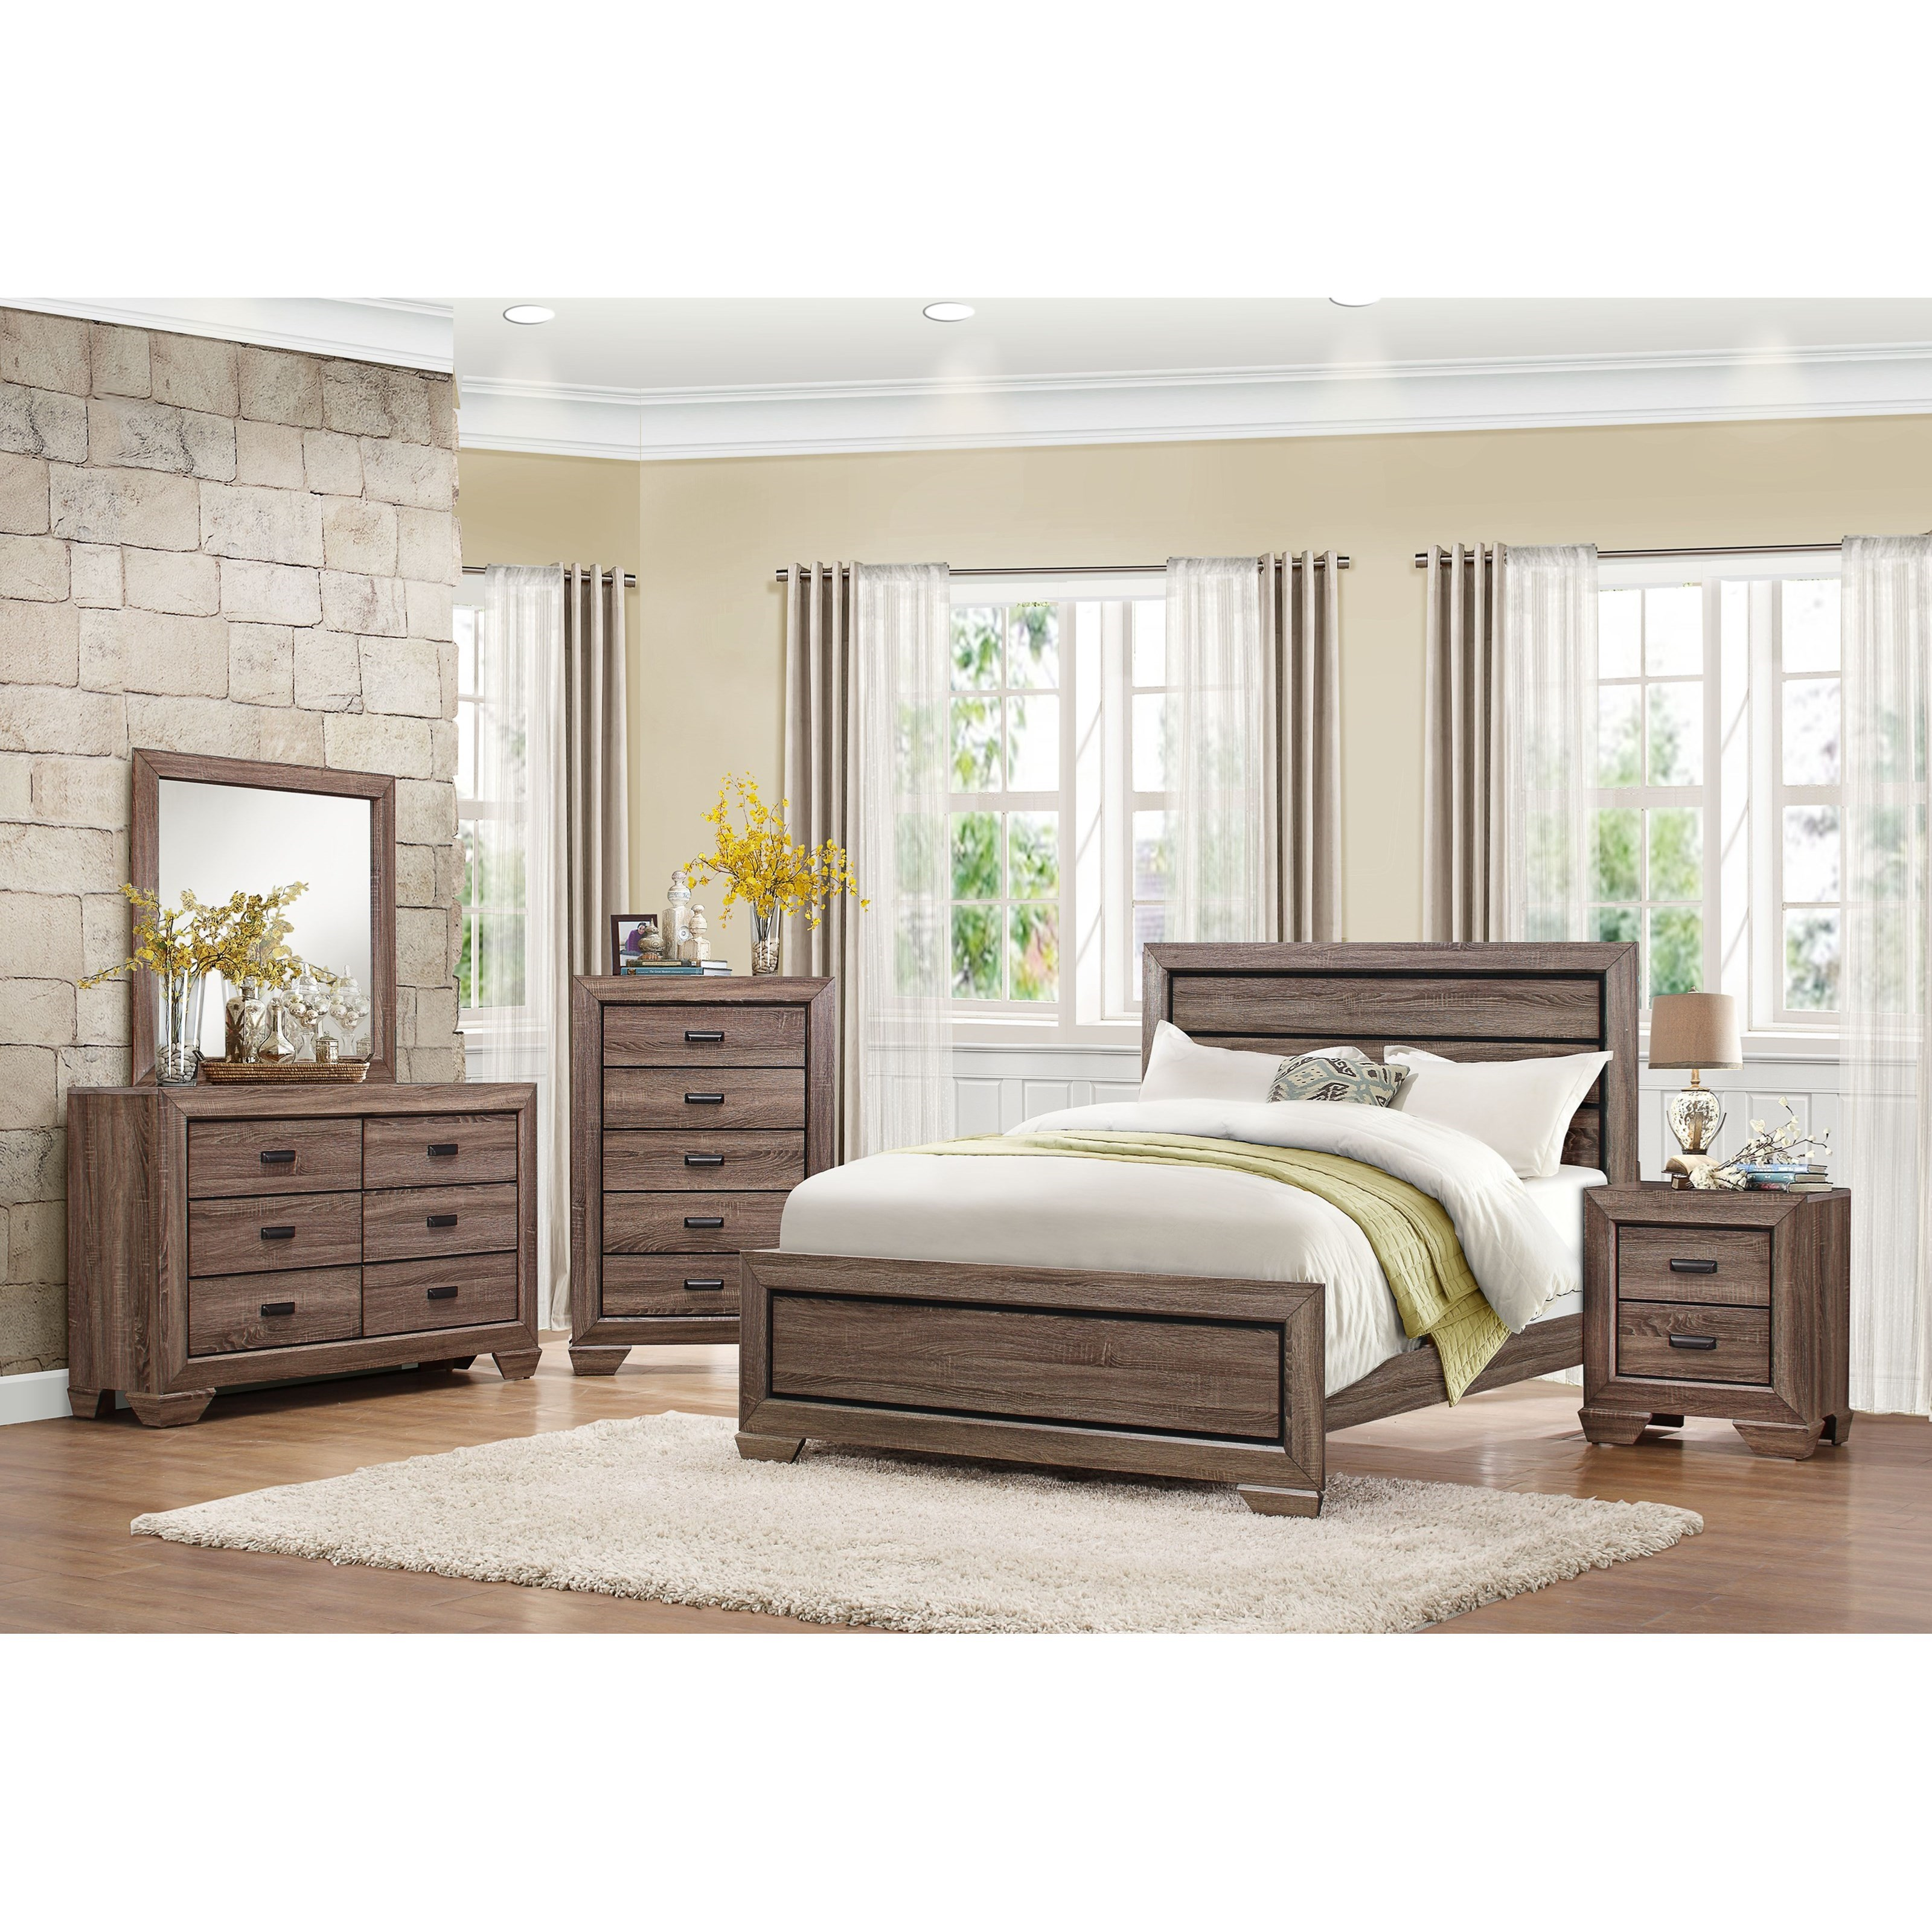 Beechnut California King Bedroom Group by Homelegance at Rife's Home Furniture